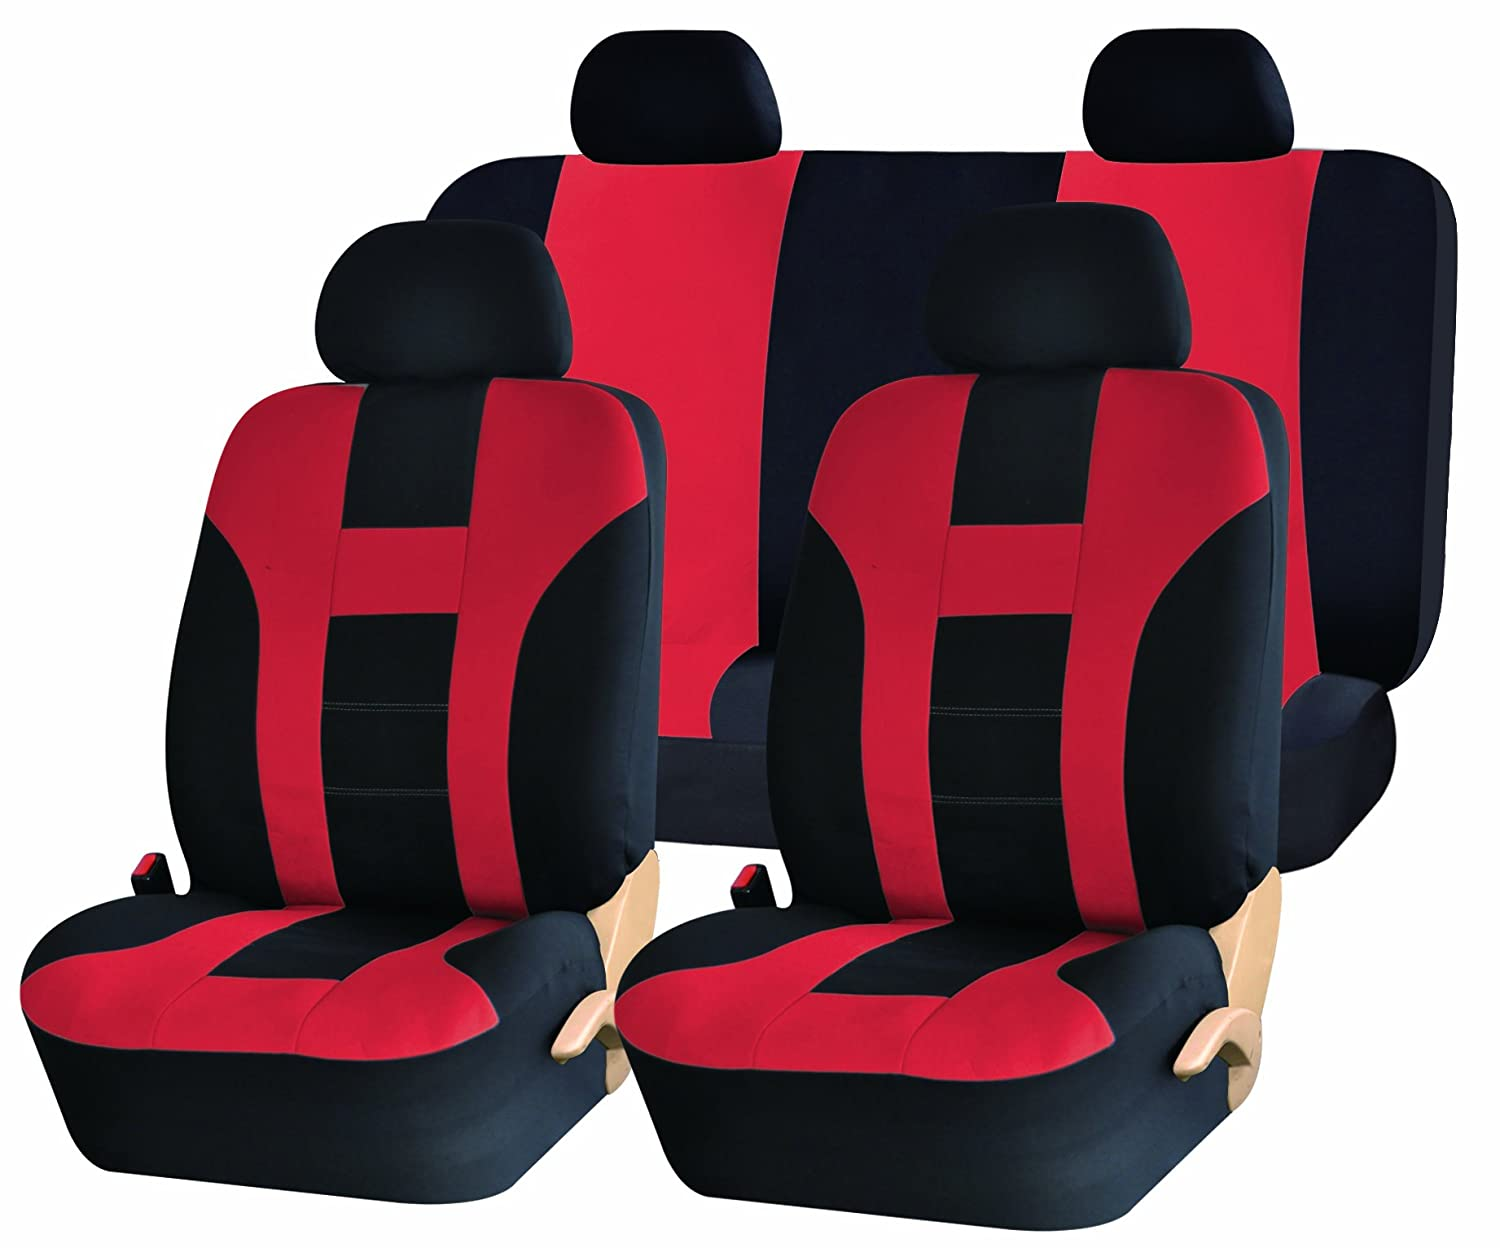 racing style black and red vinyl car recliner universal. Black Bedroom Furniture Sets. Home Design Ideas